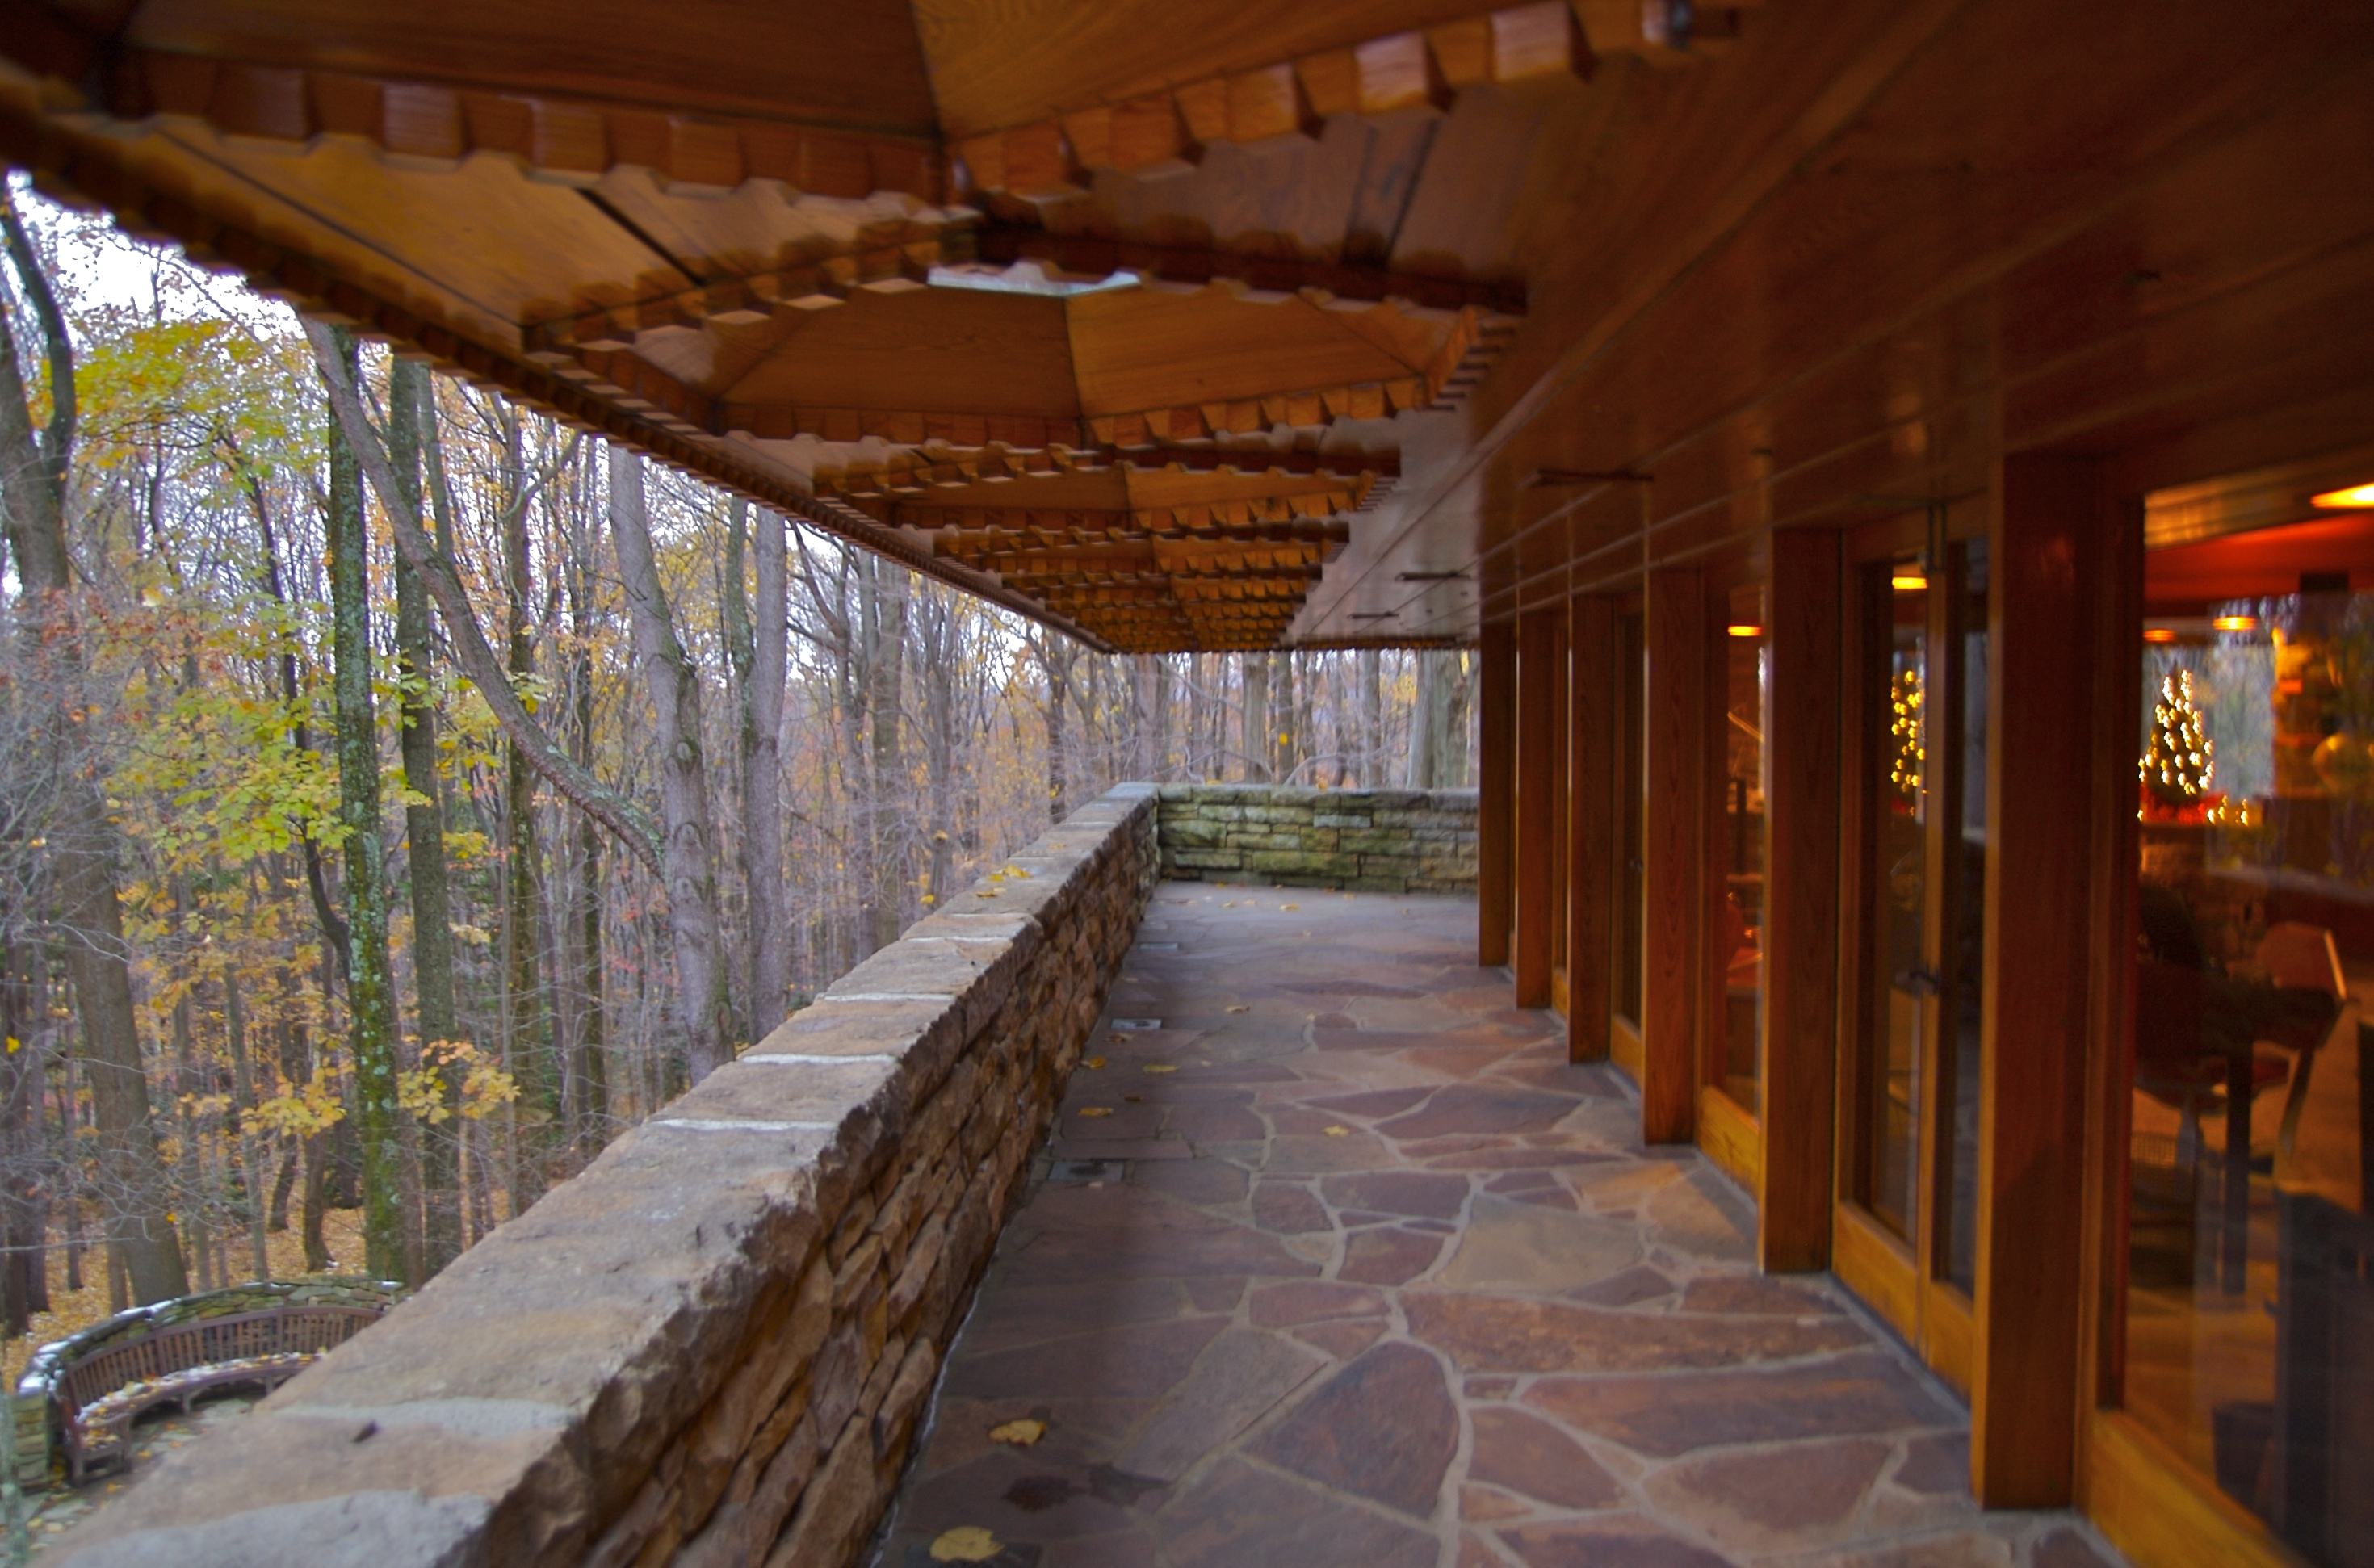 File:Kentuck Knob2.jpg - Wikimedia Commons